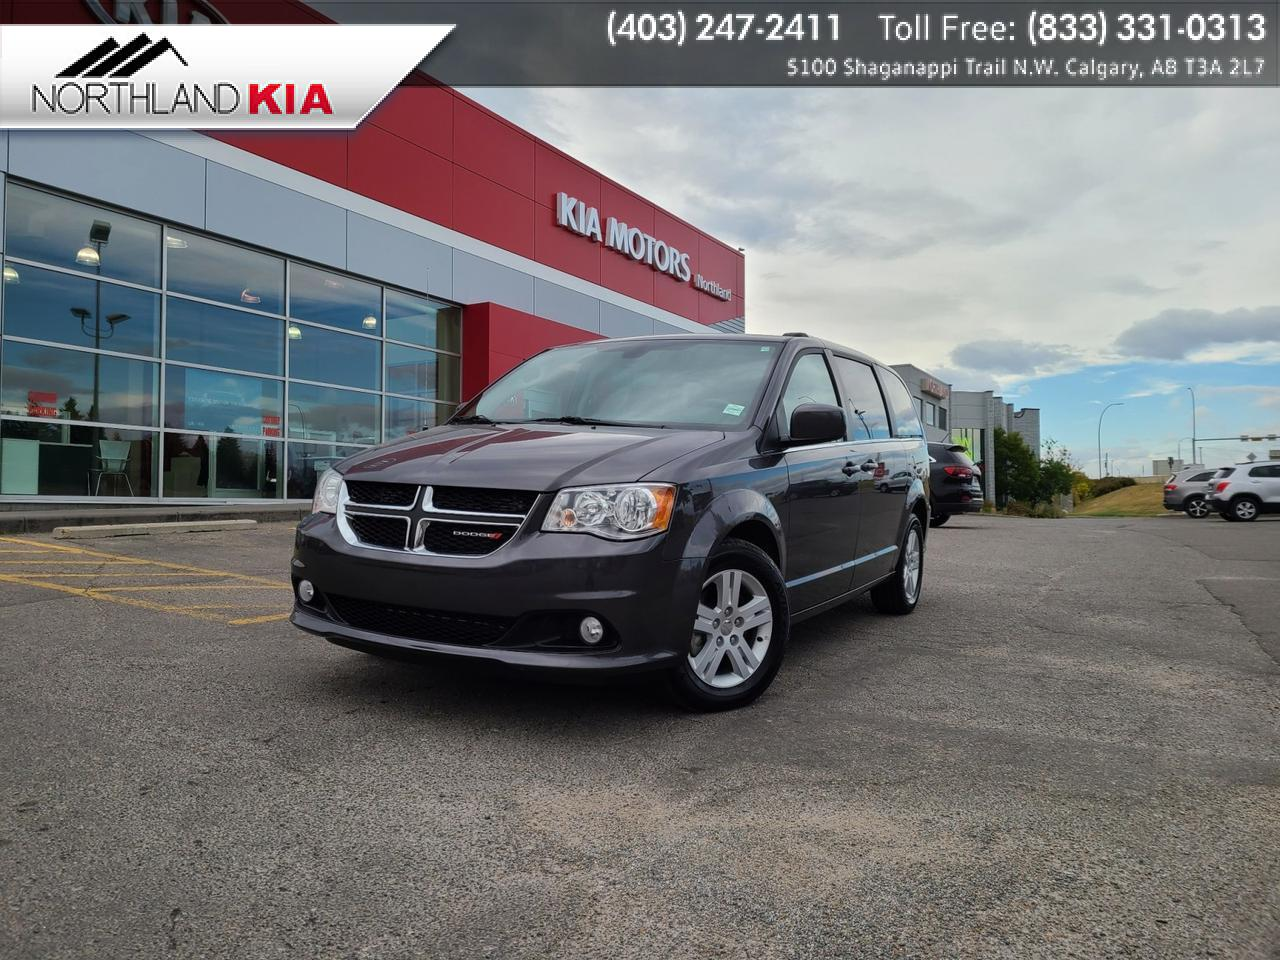 2019 Dodge Grand Caravan Crew Plus DVD, HEATED SEATS/STEERING, NAV, BACKUP CAMERA Calgary AB